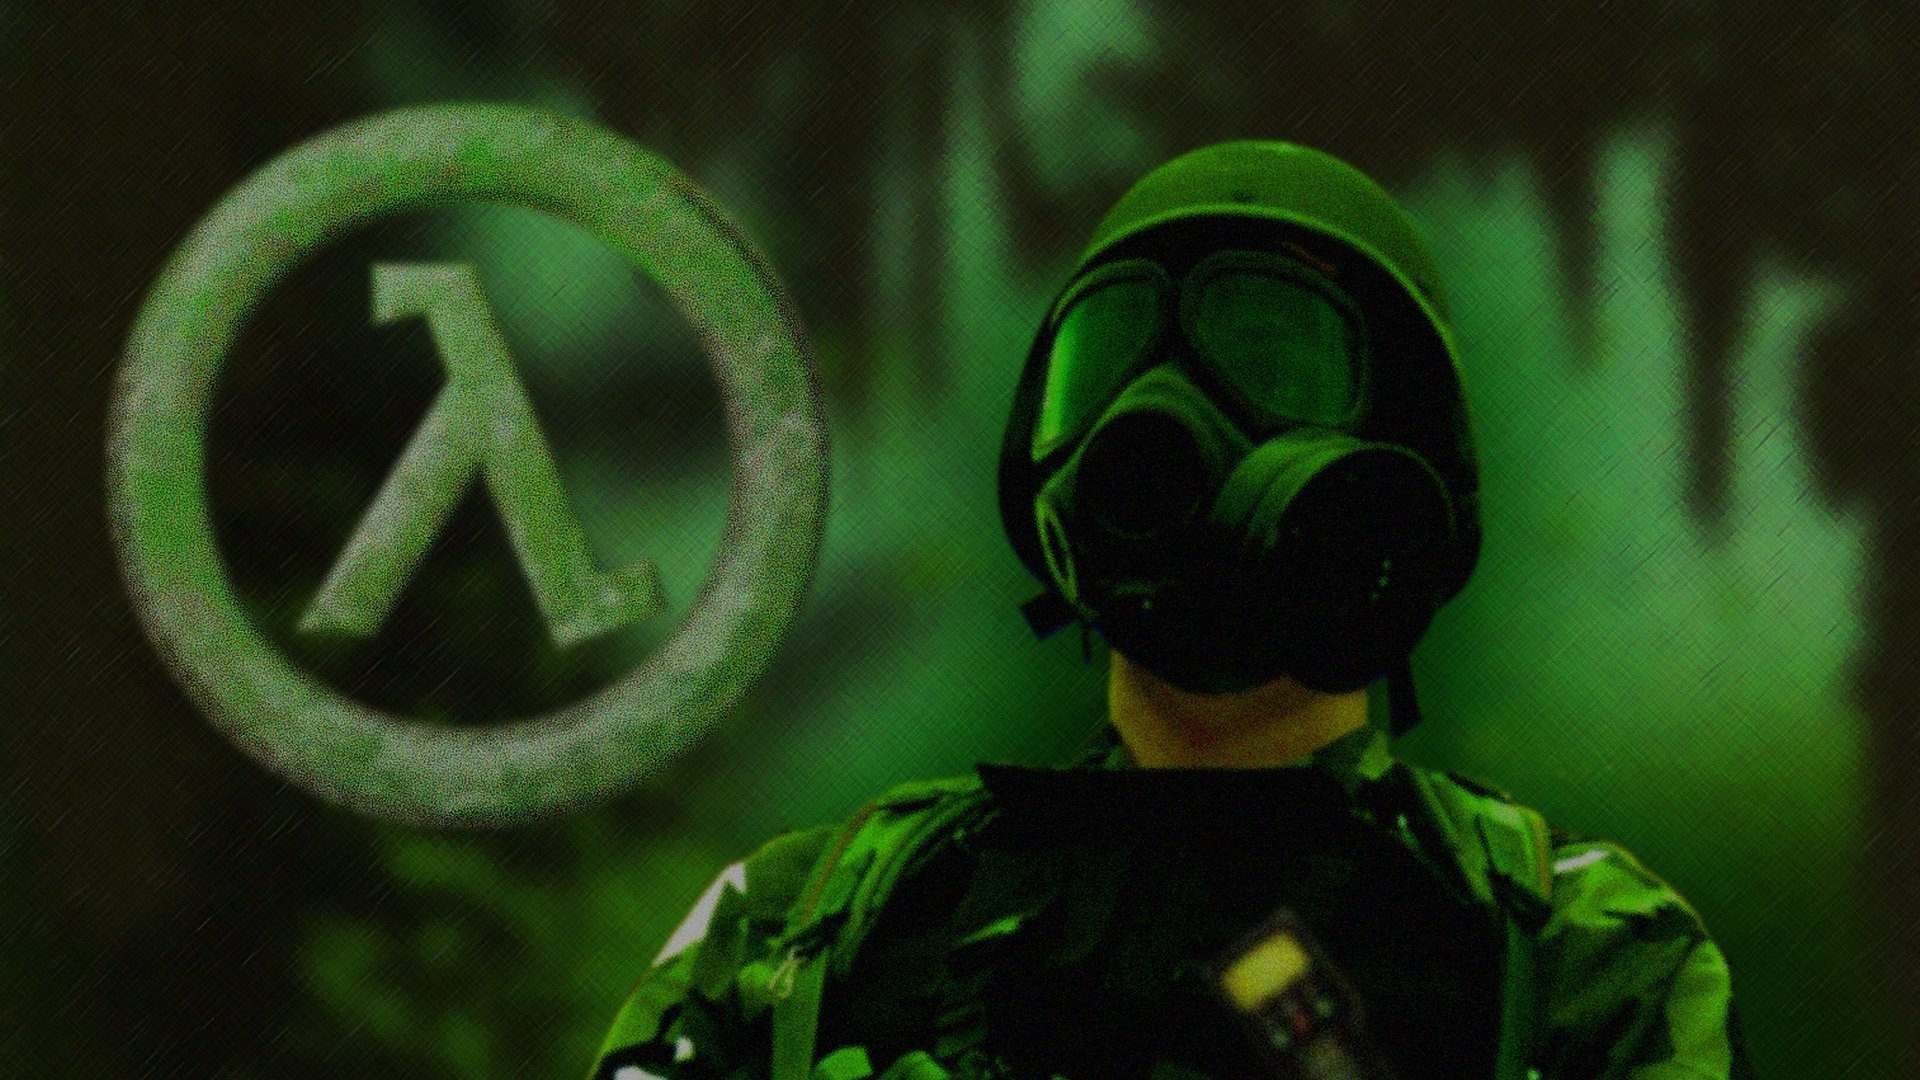 Half Life Opposing Force Hd Wallpaper Background Image